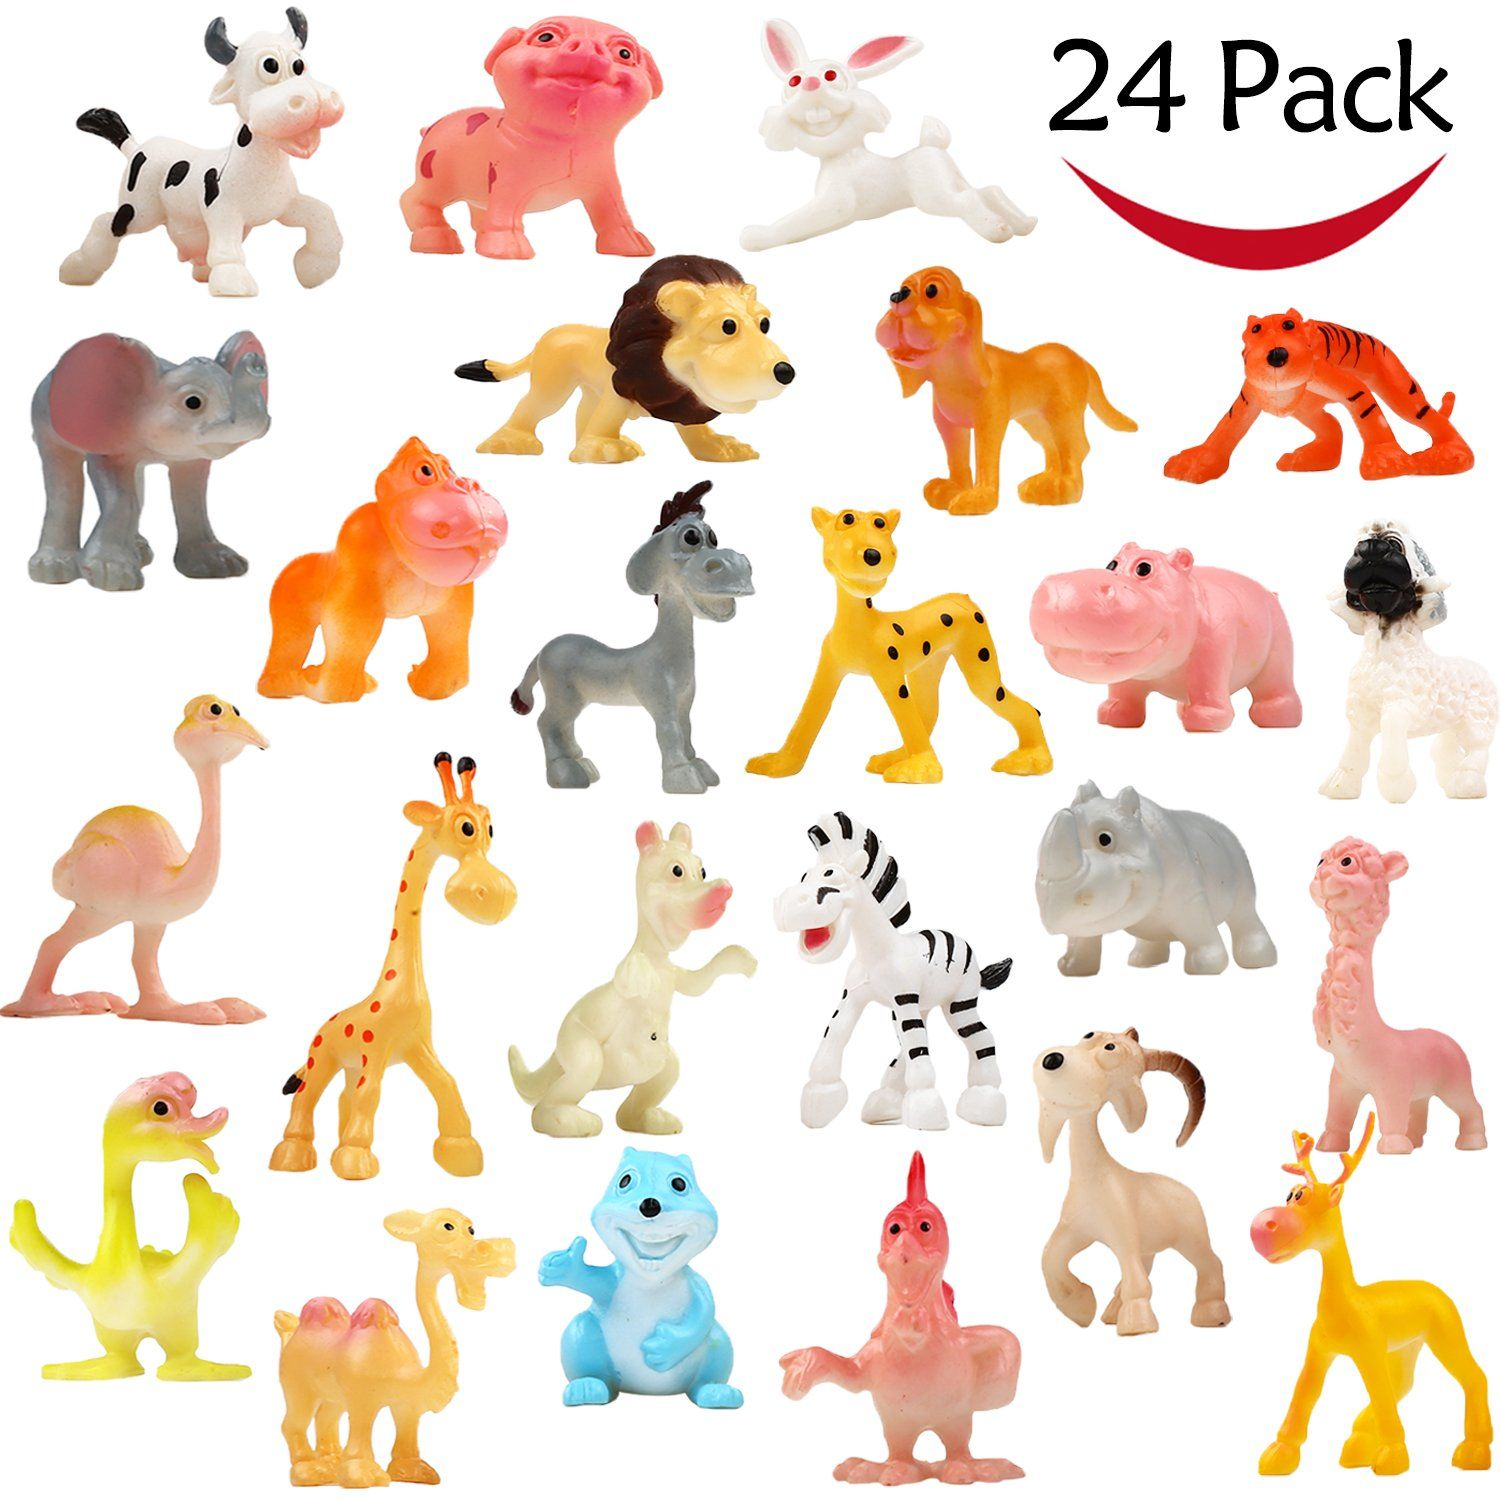 Cartoon Animal 24 Pack Mini Plastic Wild Animals Models